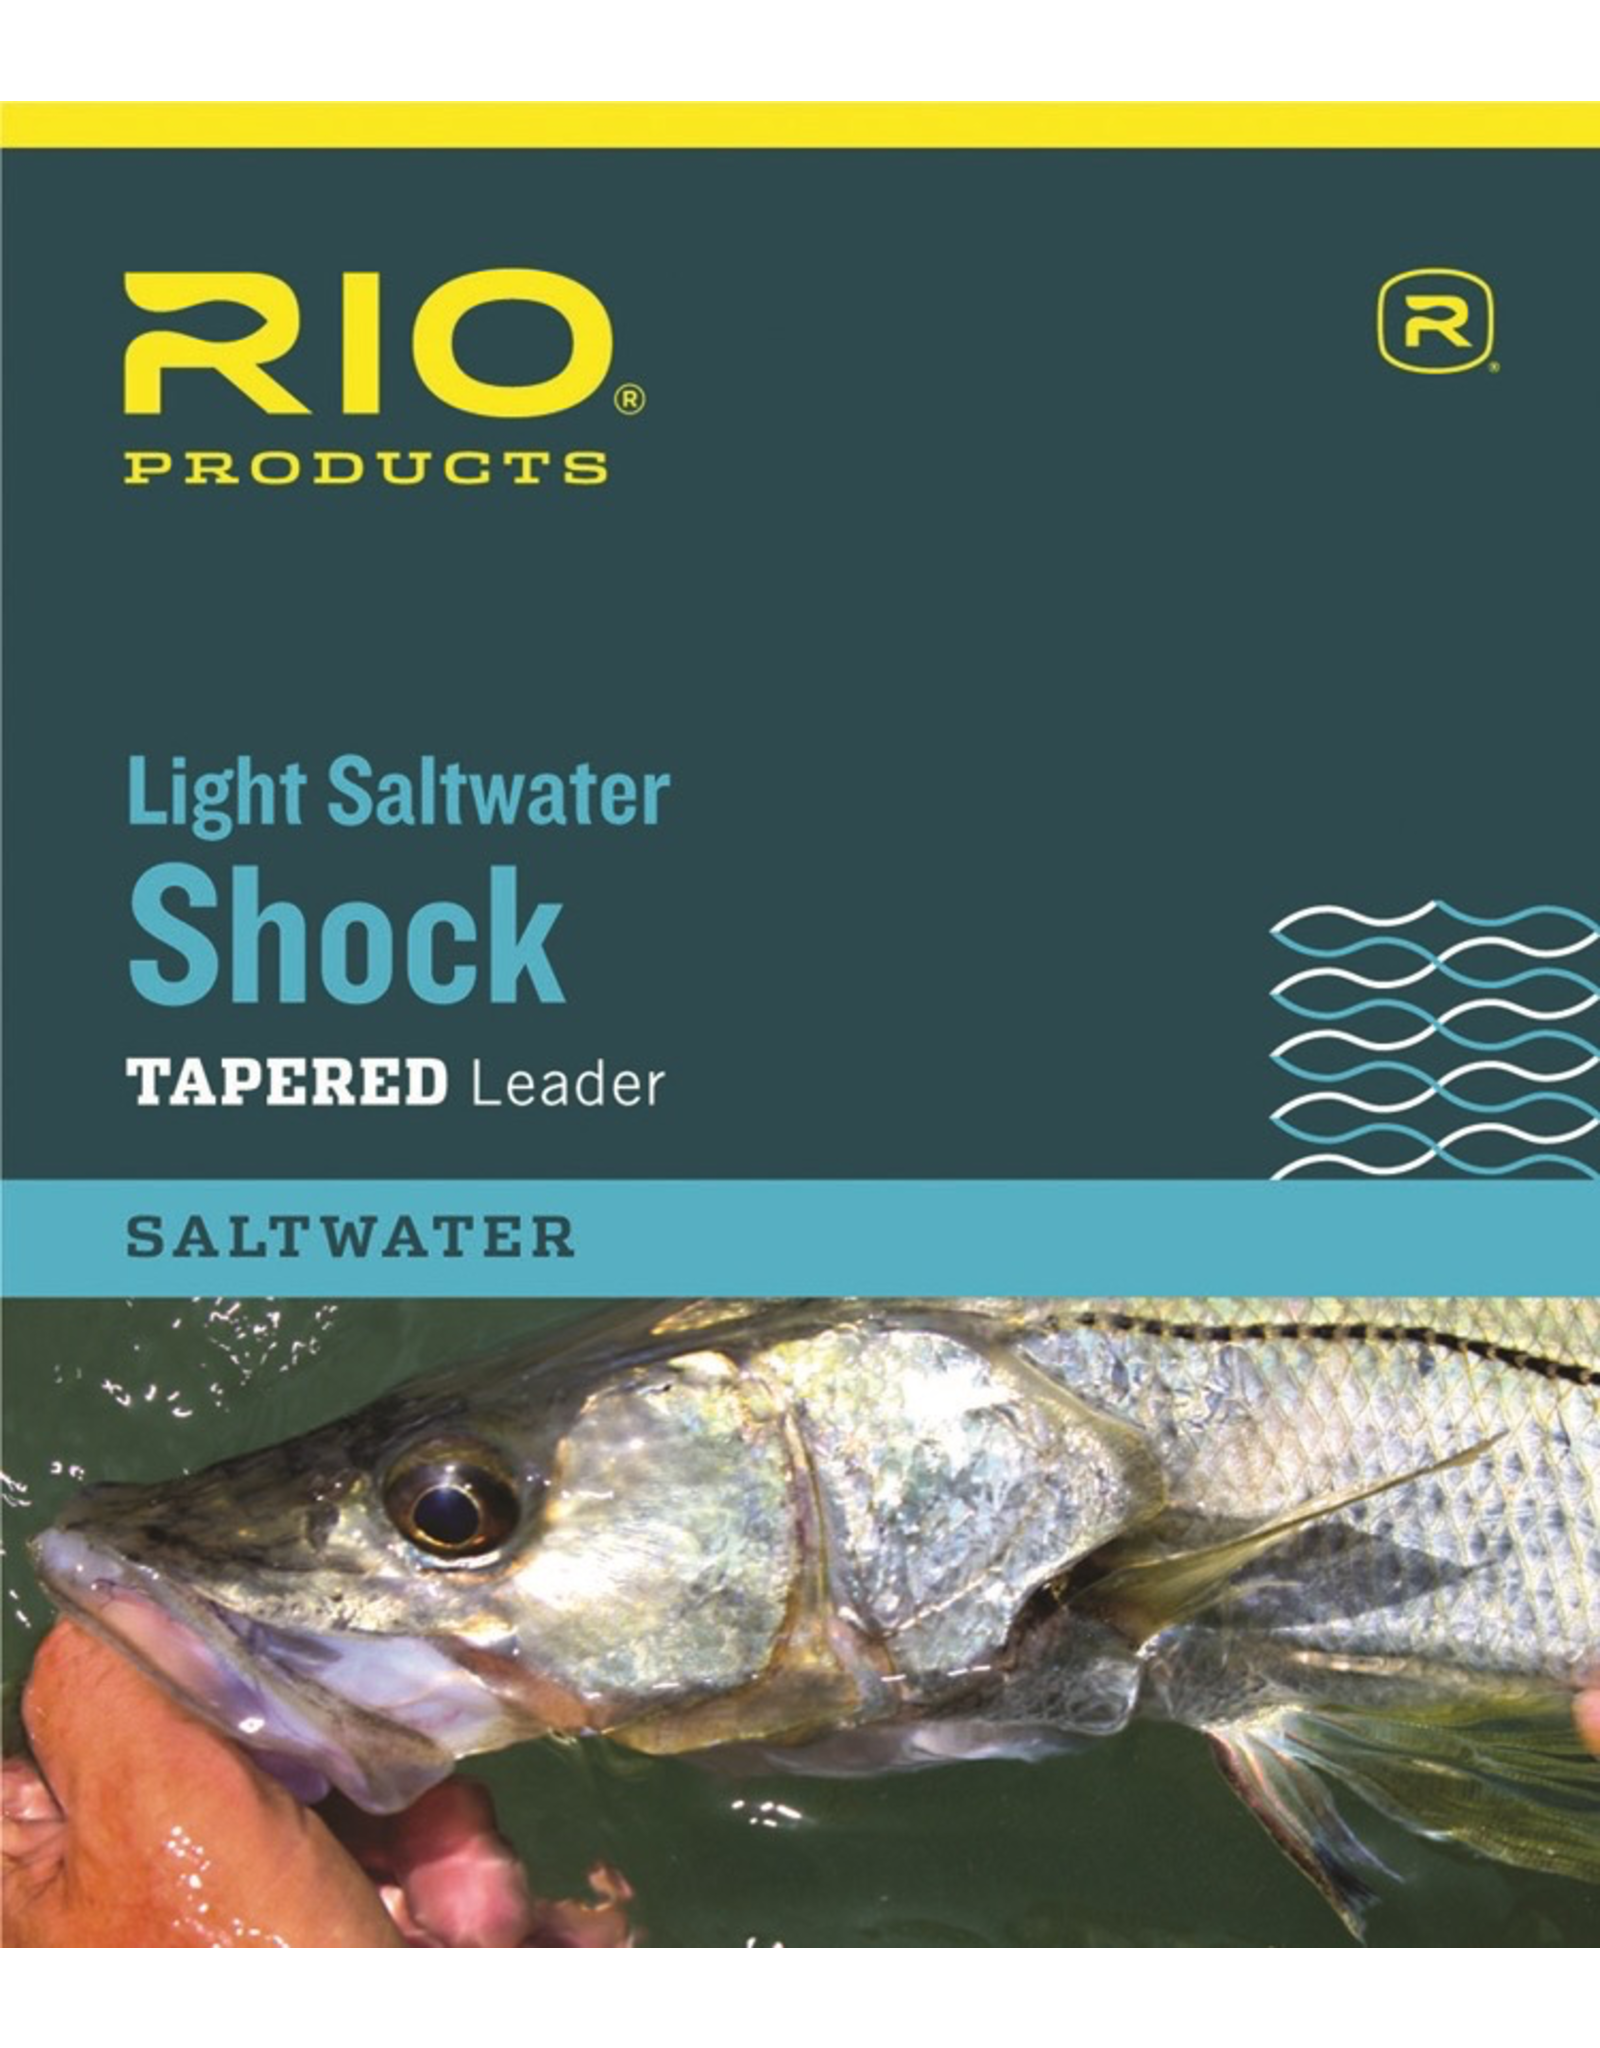 MEDIUM-STIFF TAPERED LEADERS WITH A TOUGH FLUOROCARBON SHOCK TIPPET